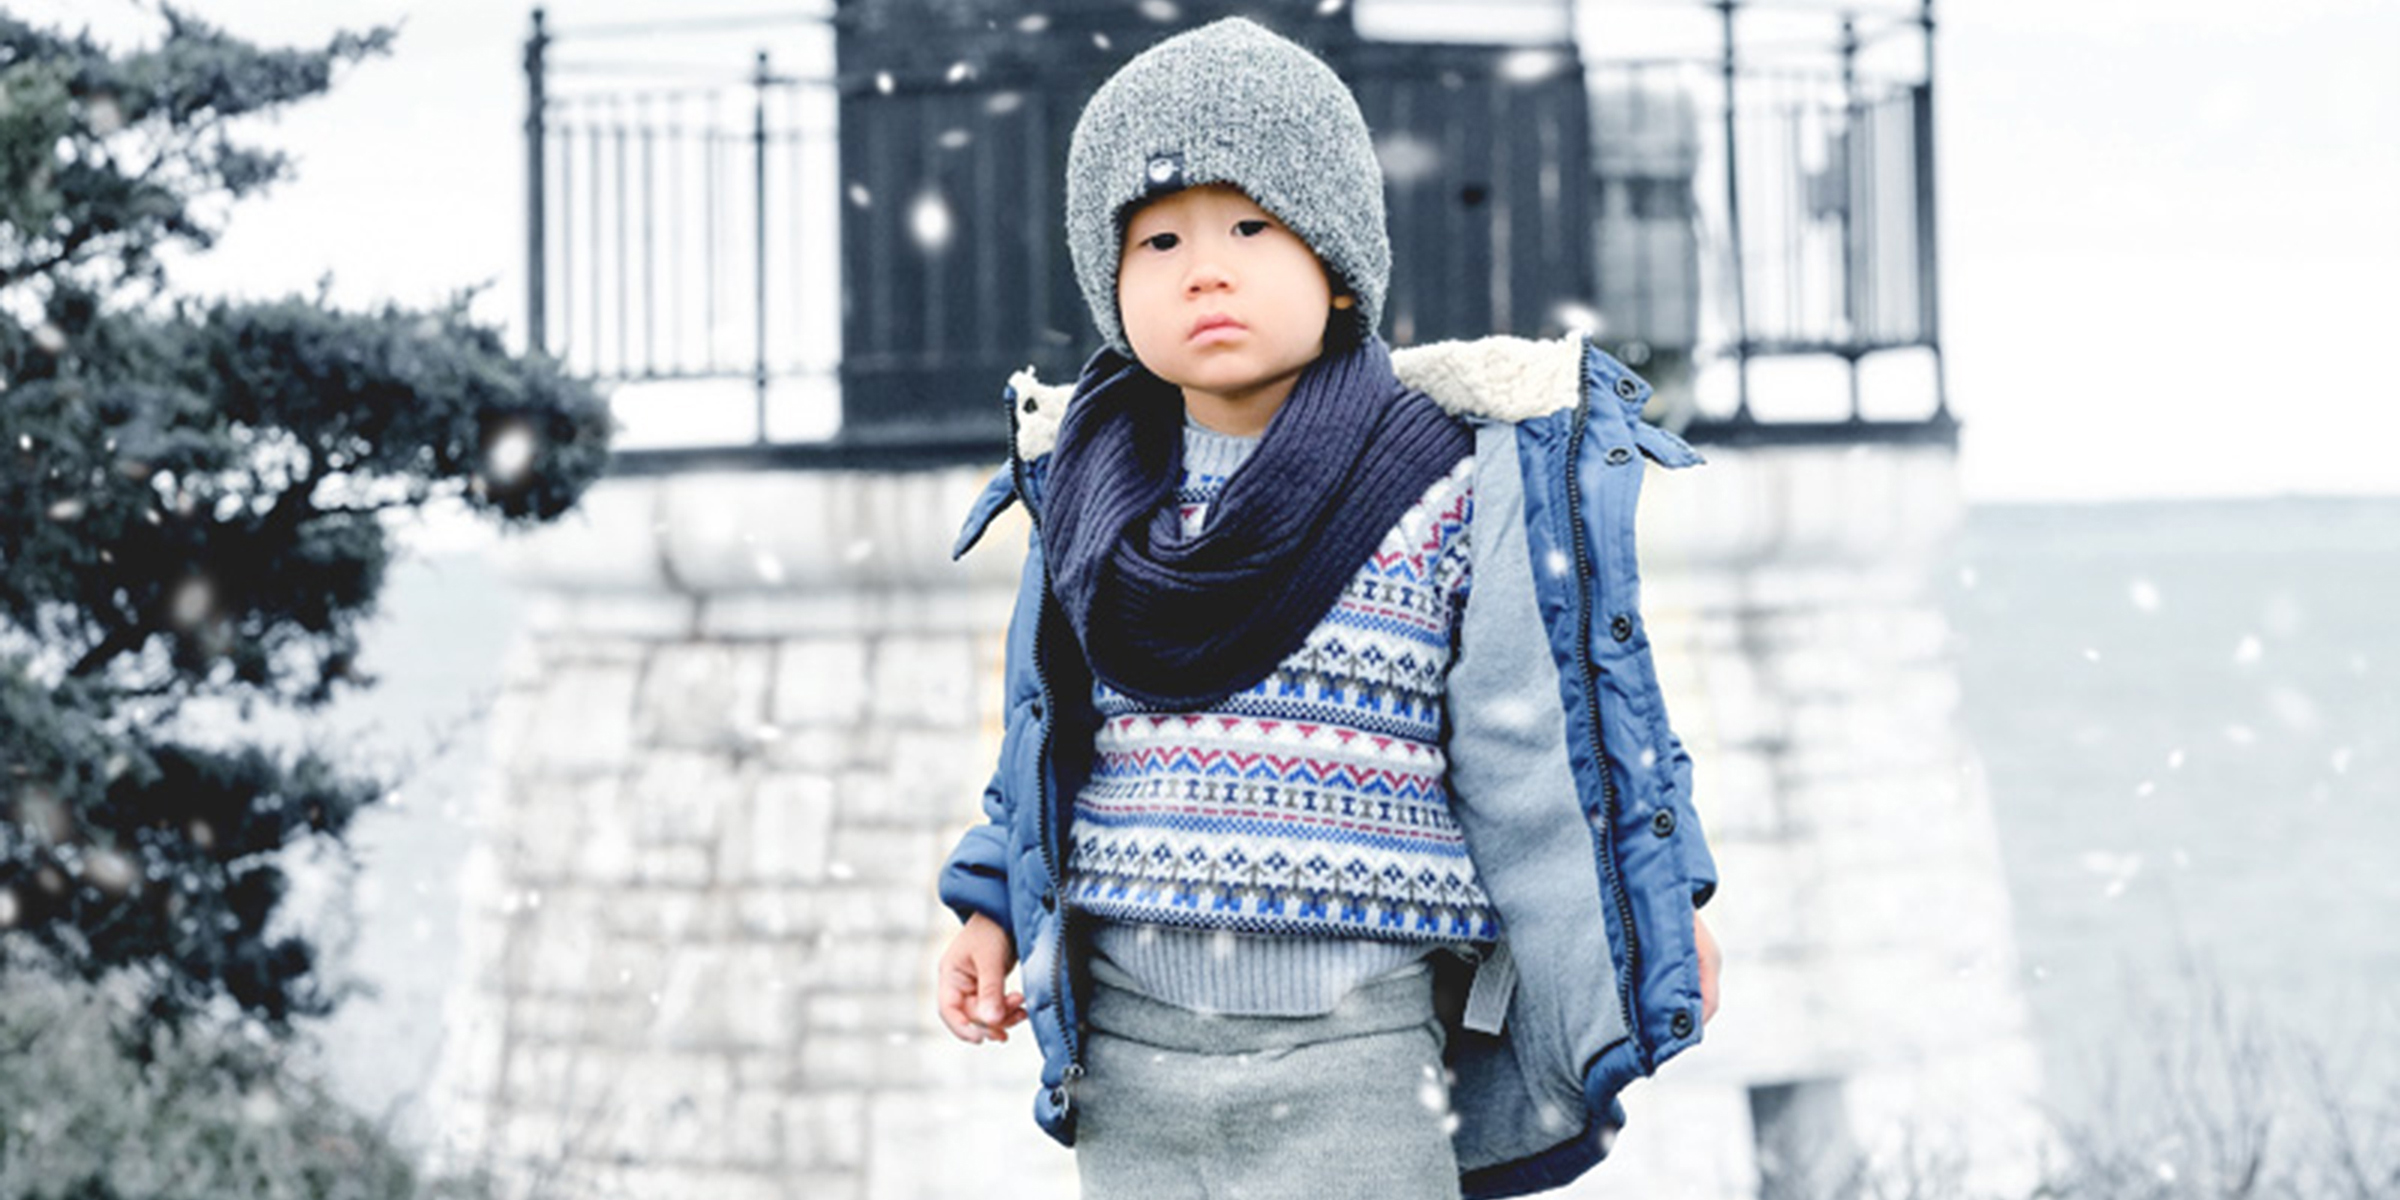 4048c53199a7 The best winter clothes for kids and toddlers 2019  coats